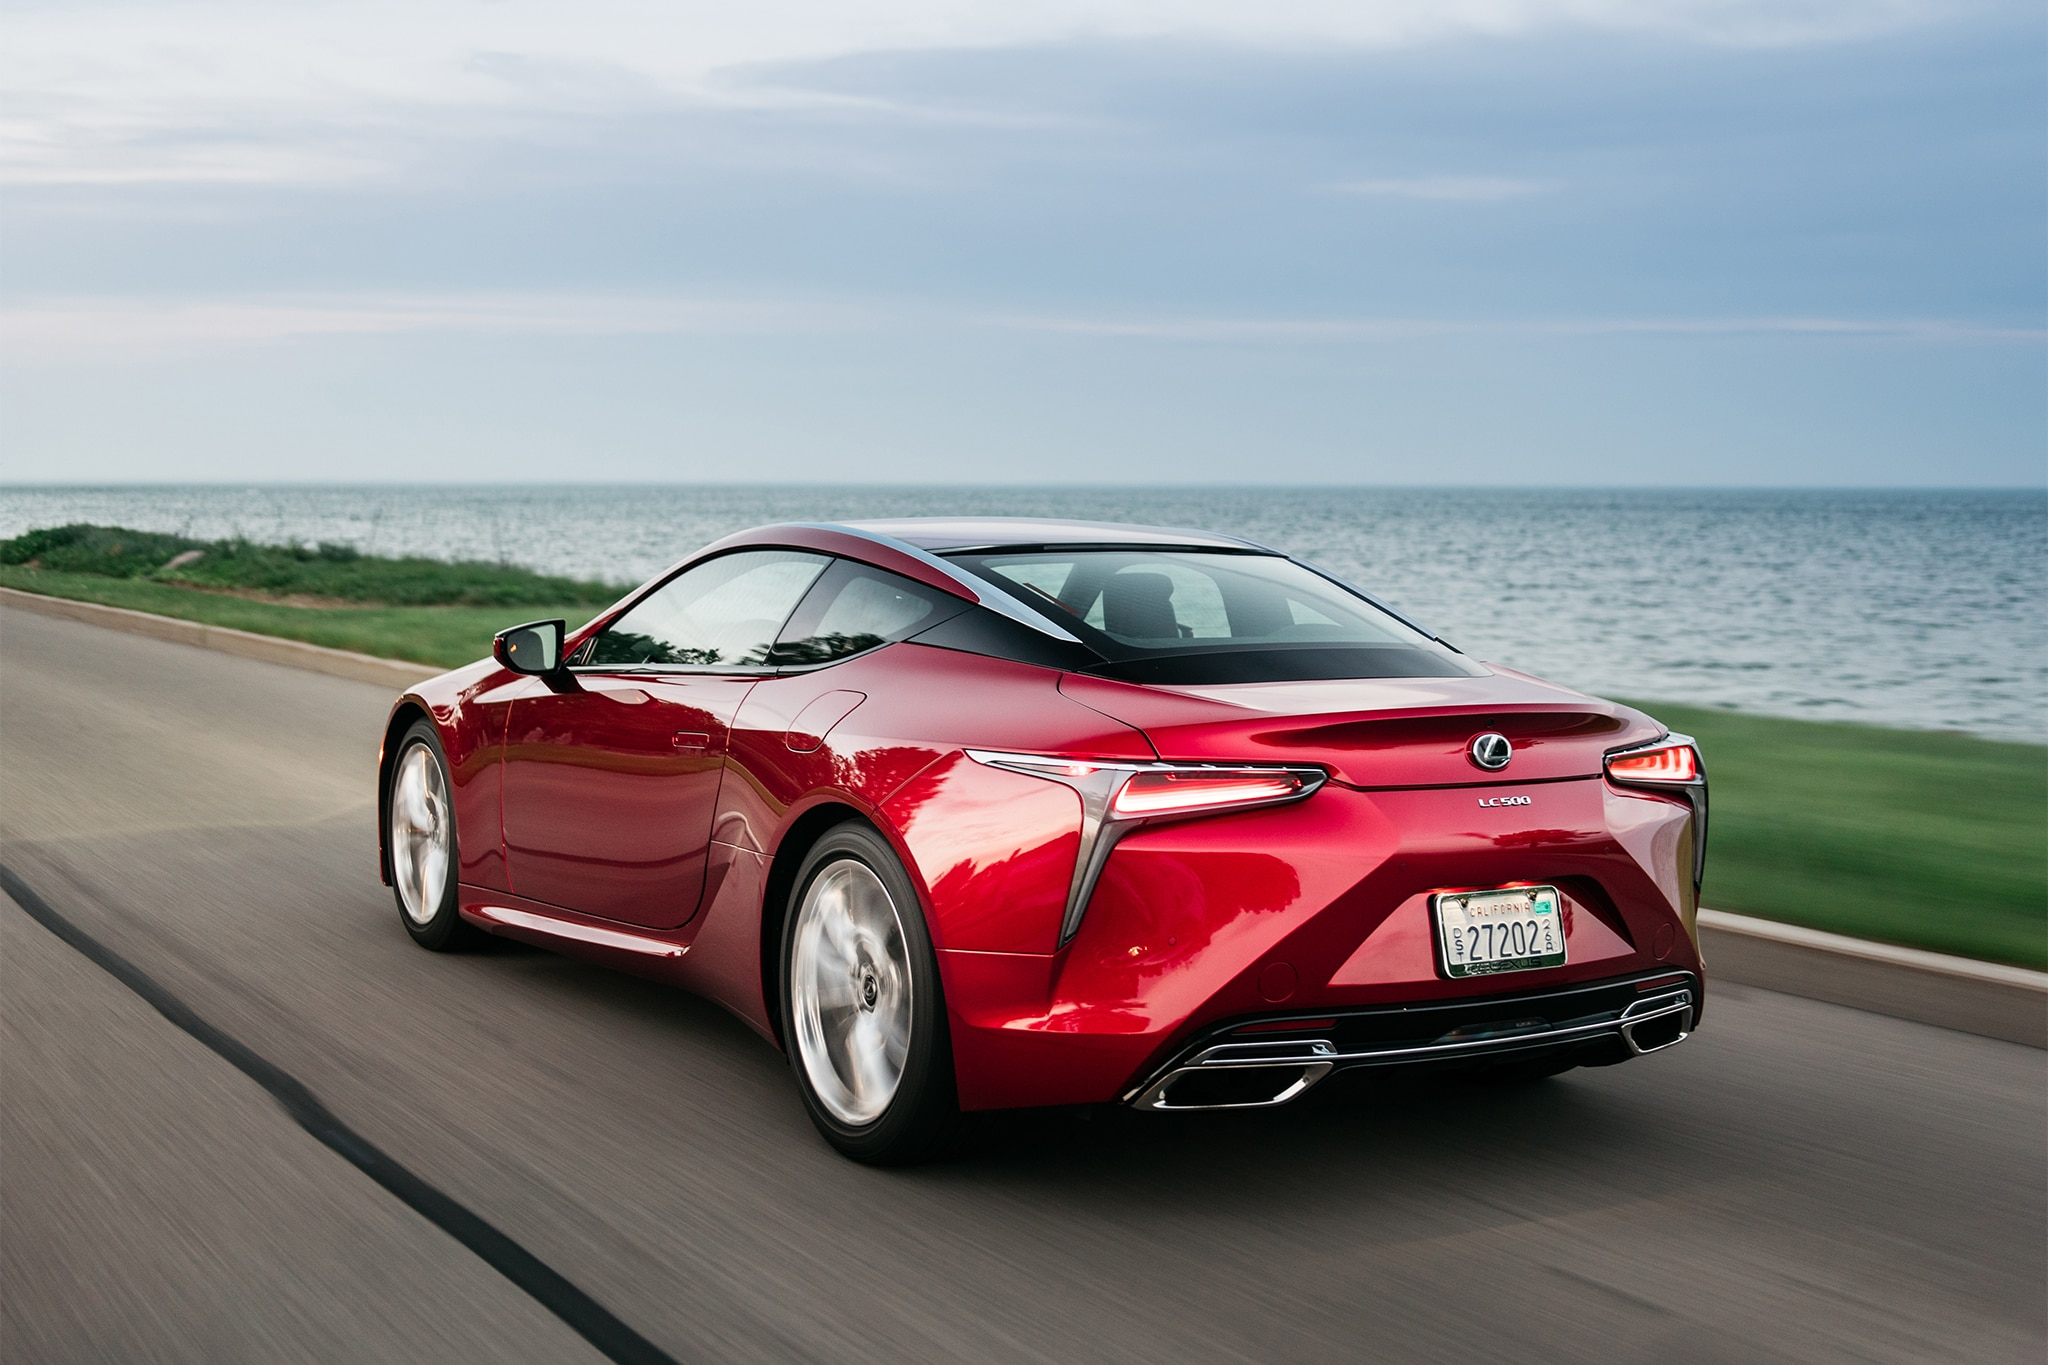 2017 Lexus Lc 500 >> One Week With: 2018 Lexus LC 500 | Automobile Magazine